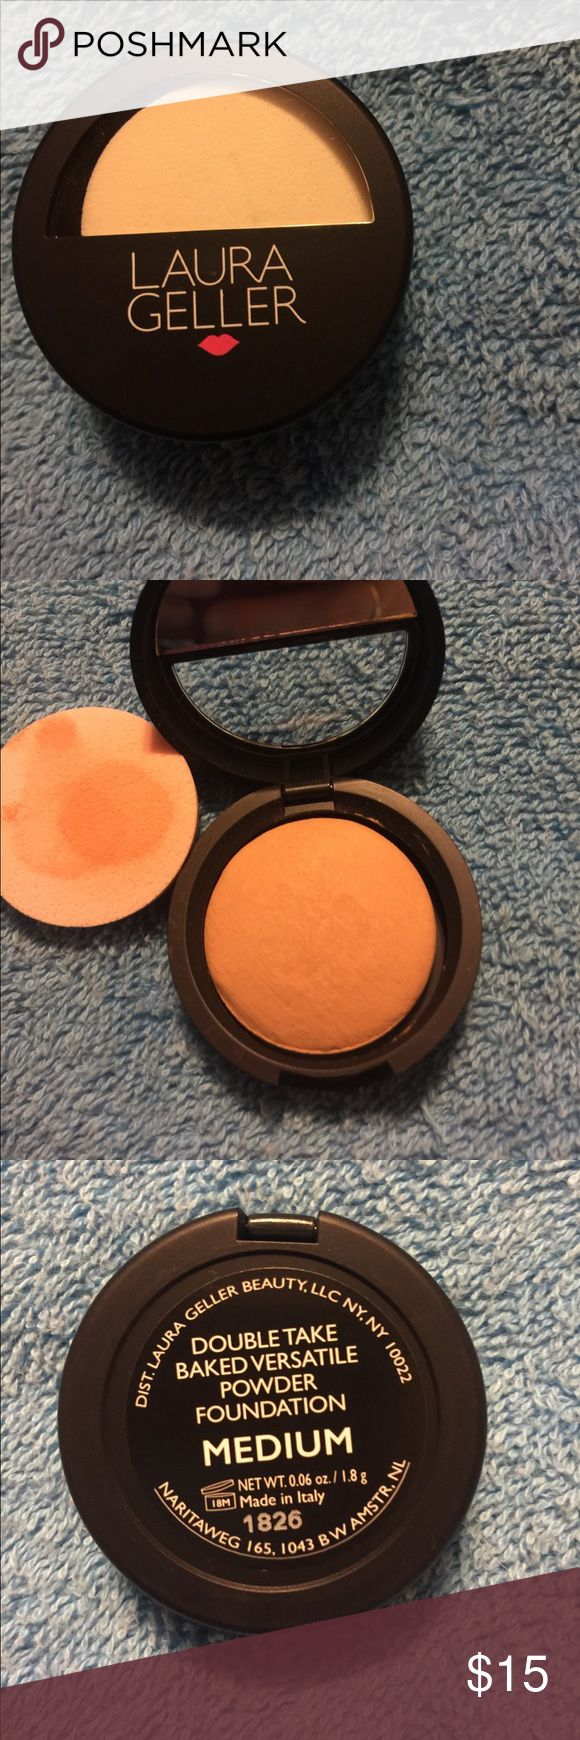 Laura Geller  Foundation Powder Medium Laura Geller  Doible Take Baked Versatile Foundation Powder Medium. Opened and didn't like the color. Never used. Marks on applicator is from it being in case. Laura Geller Makeup Face Powder